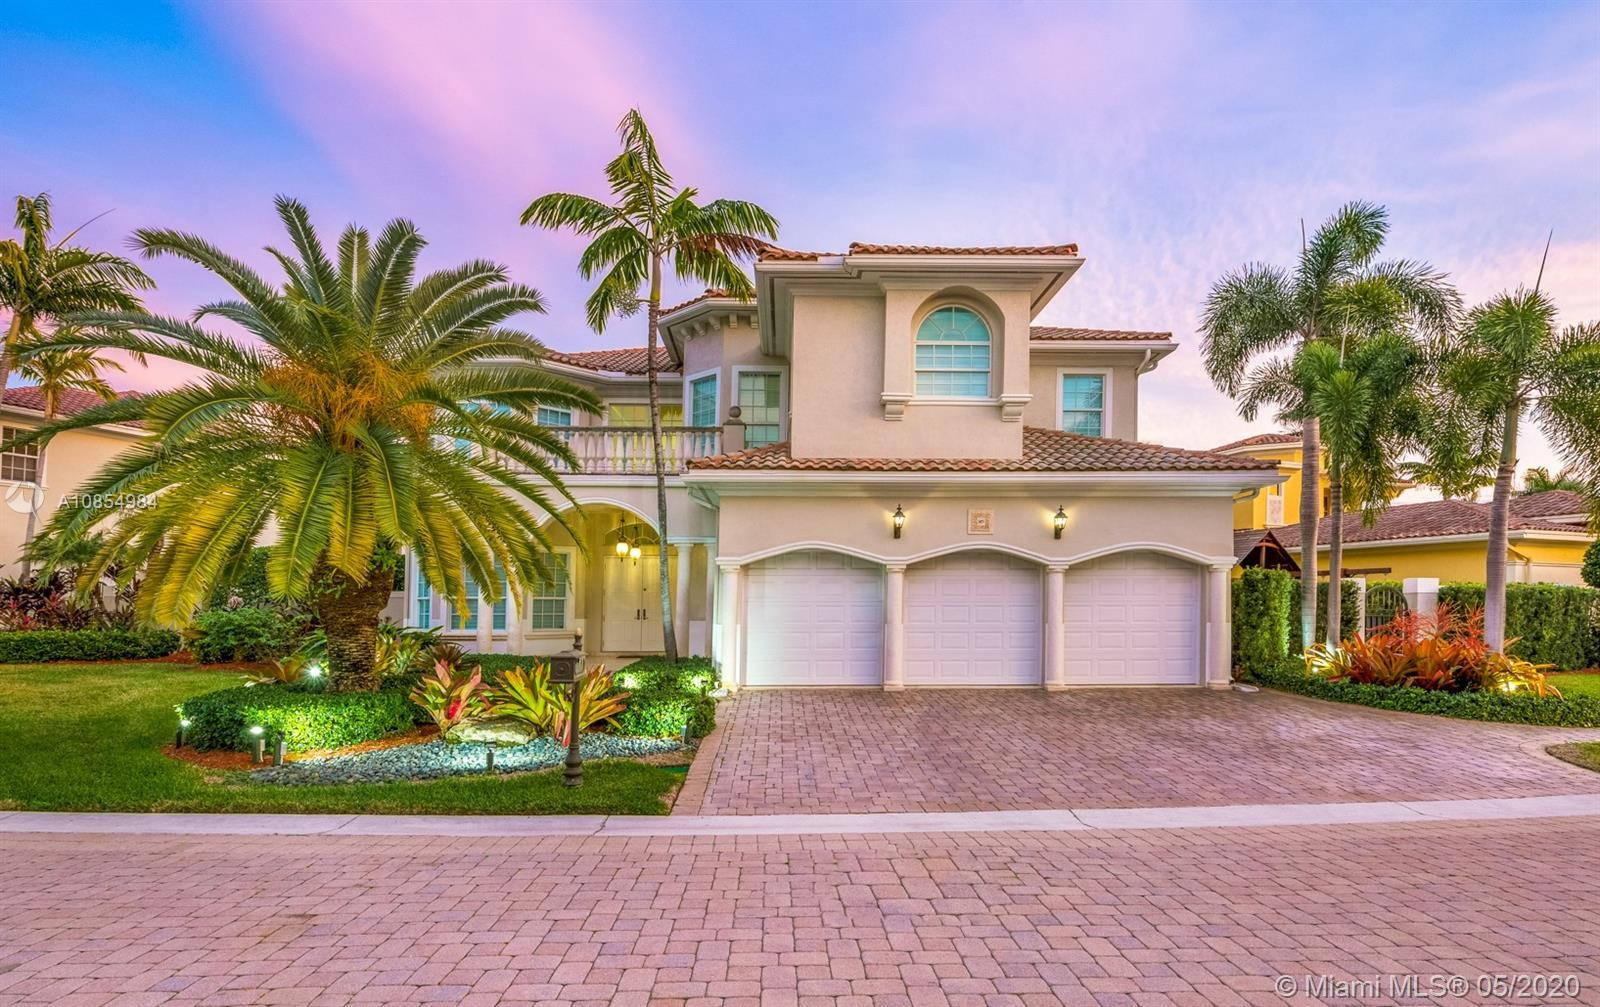 Move right into this perfectly situated sanctuary in one of the most desirable gated communities in